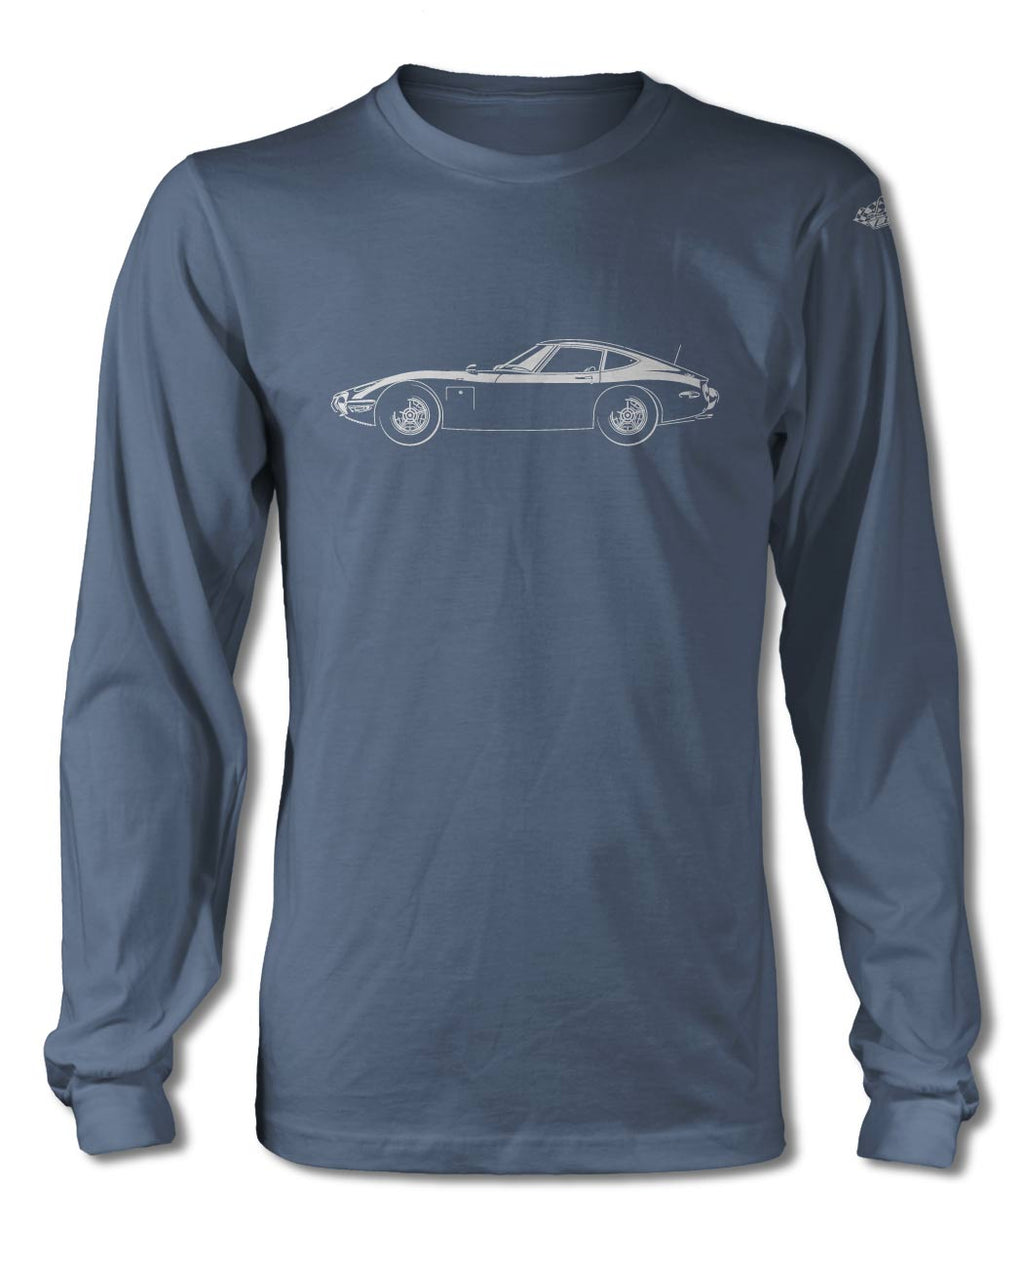 Toyota 2000GT Coupe T-Shirt - Long Sleeves - Side View